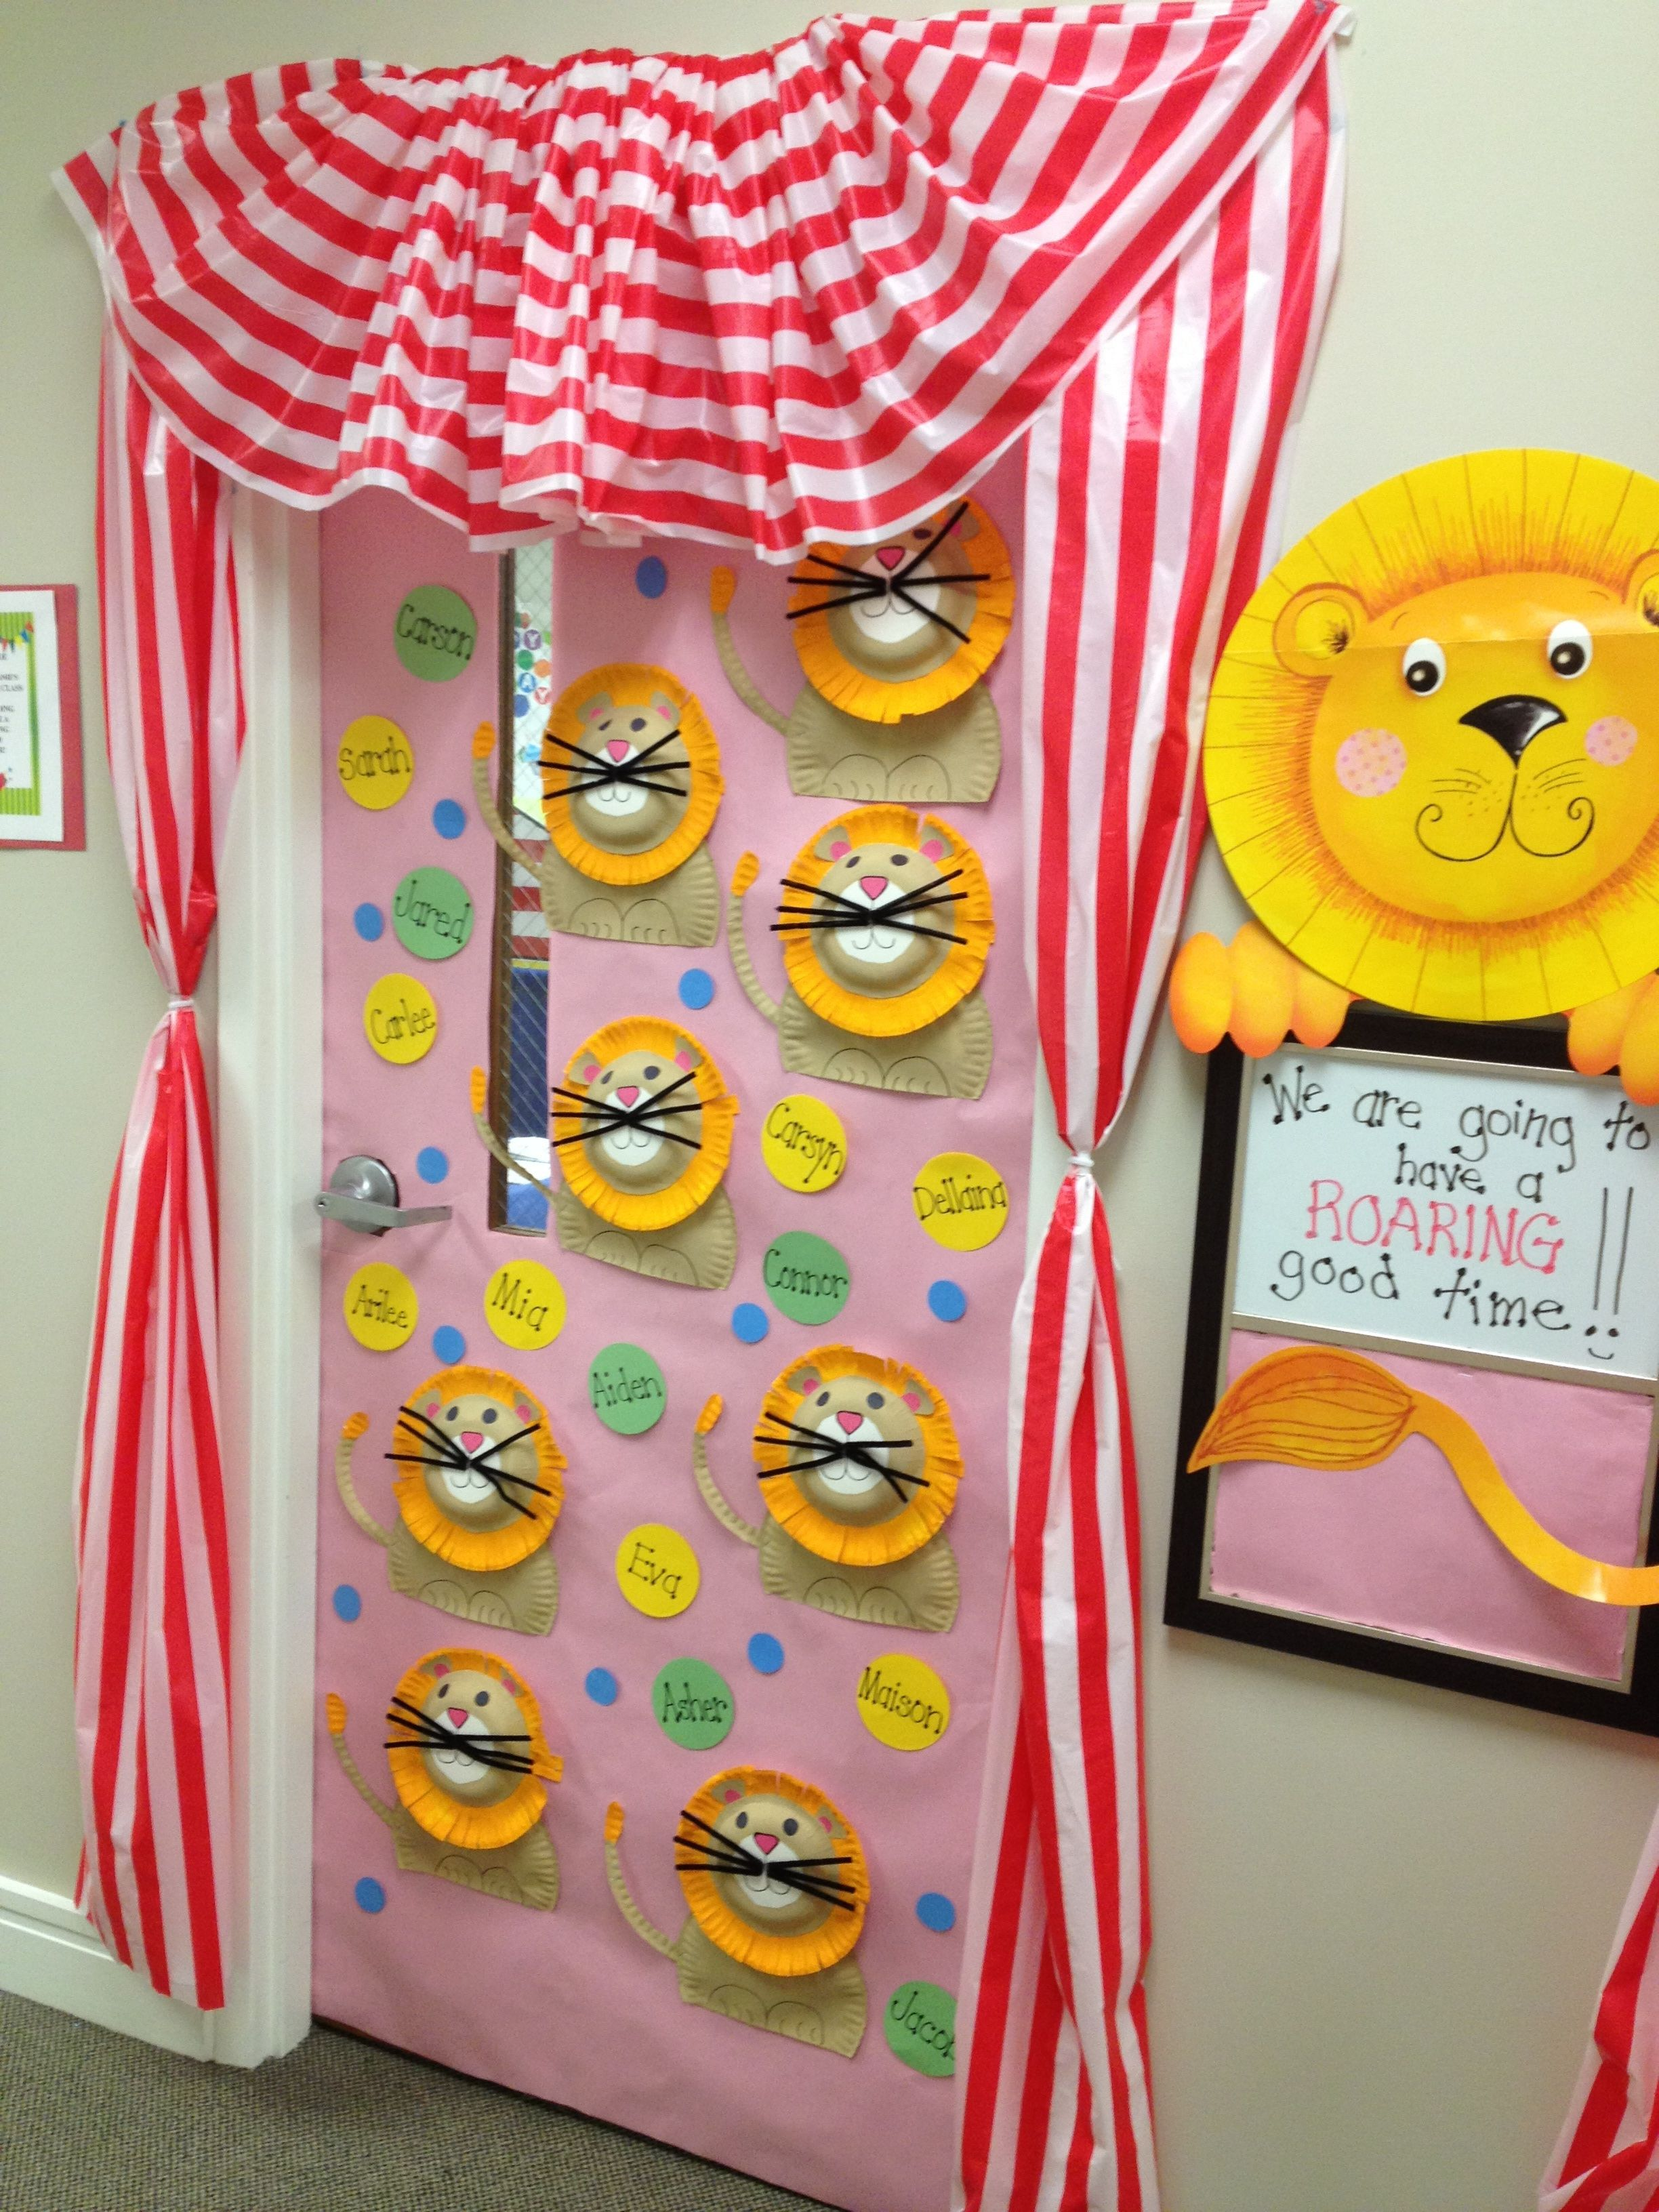 Back To School Carnival Theme At Temple Preschool New Bern Nc